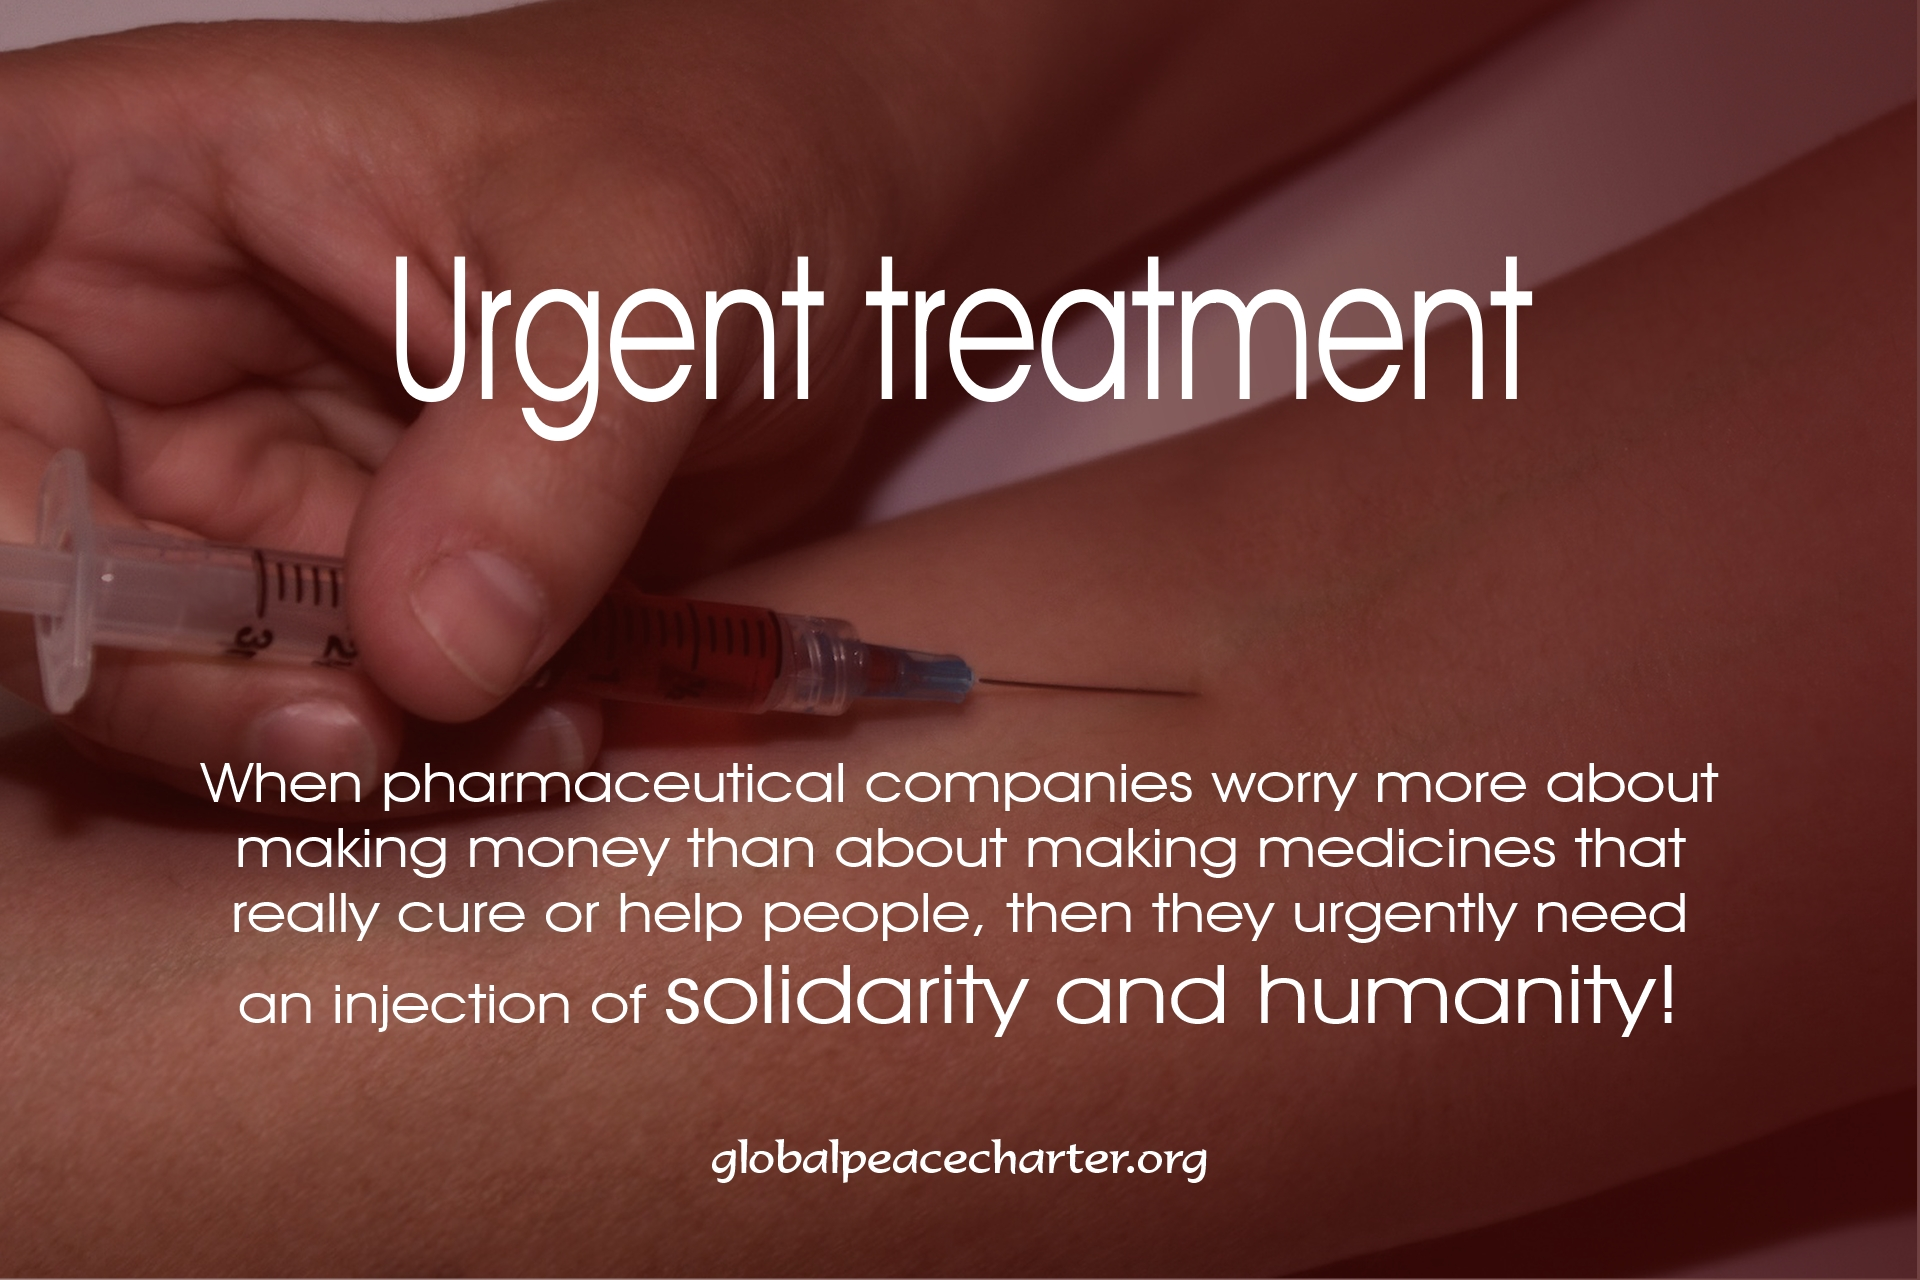 Urgent treatment